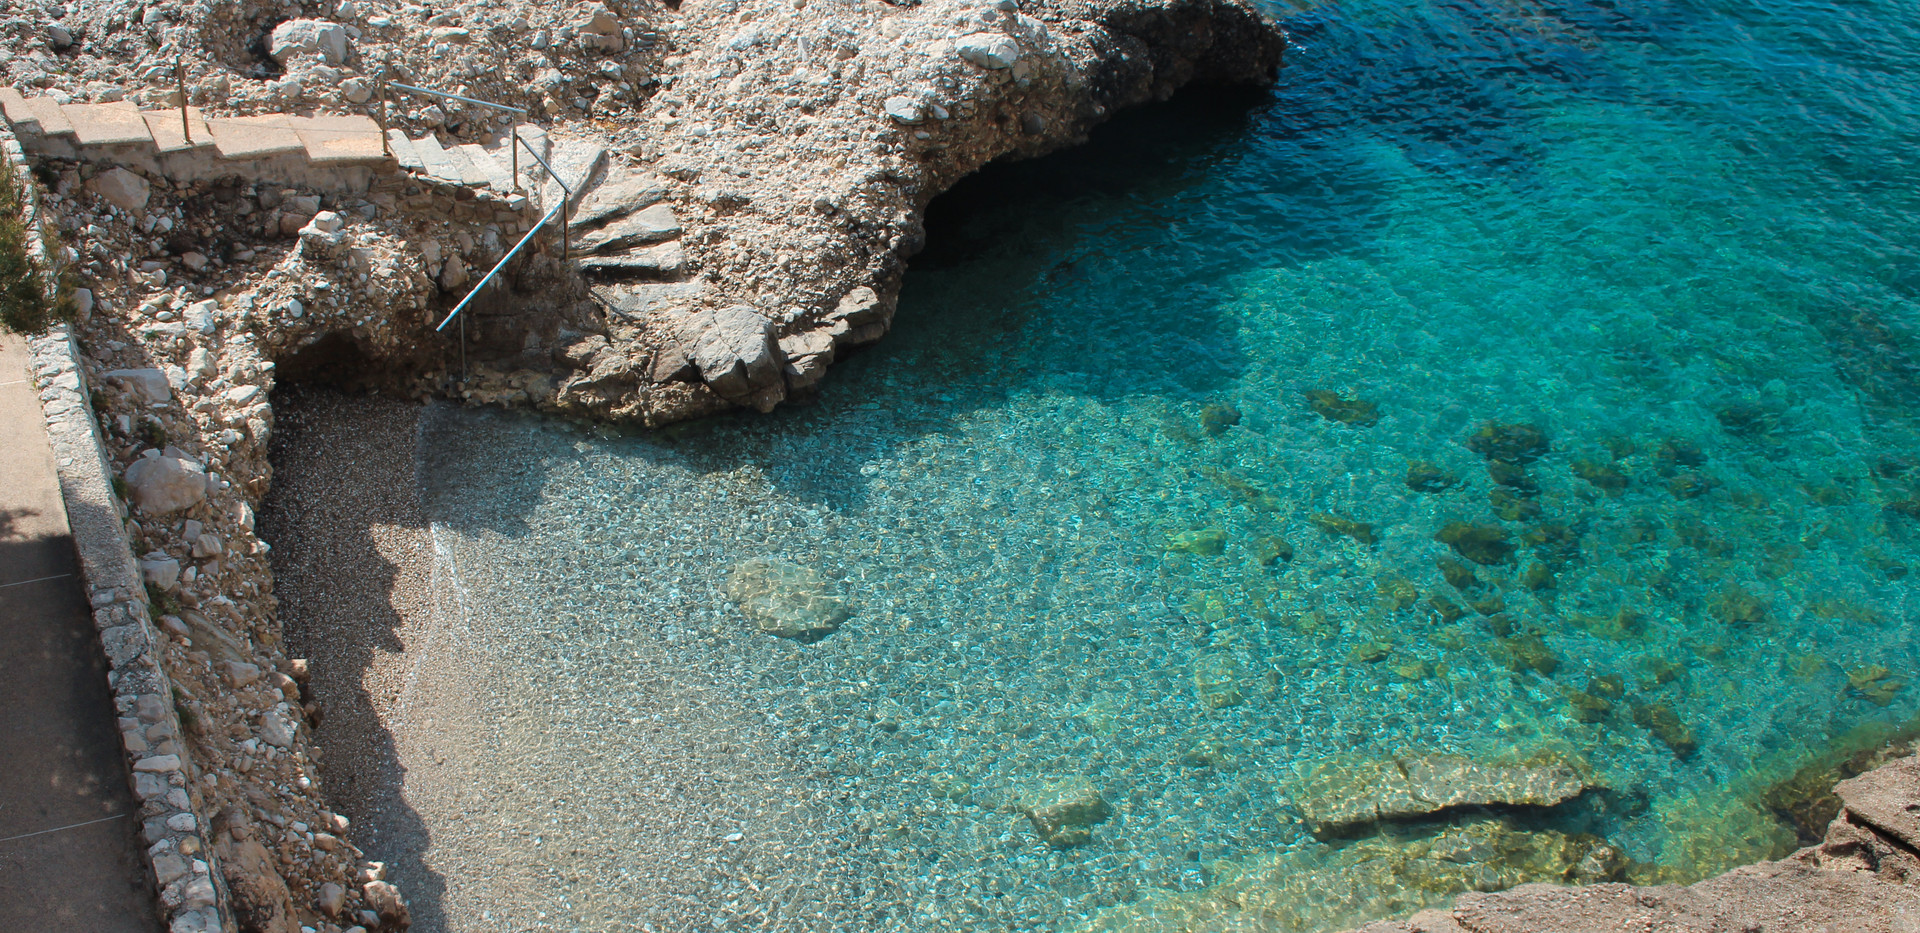 Stunning Pools Near Eze